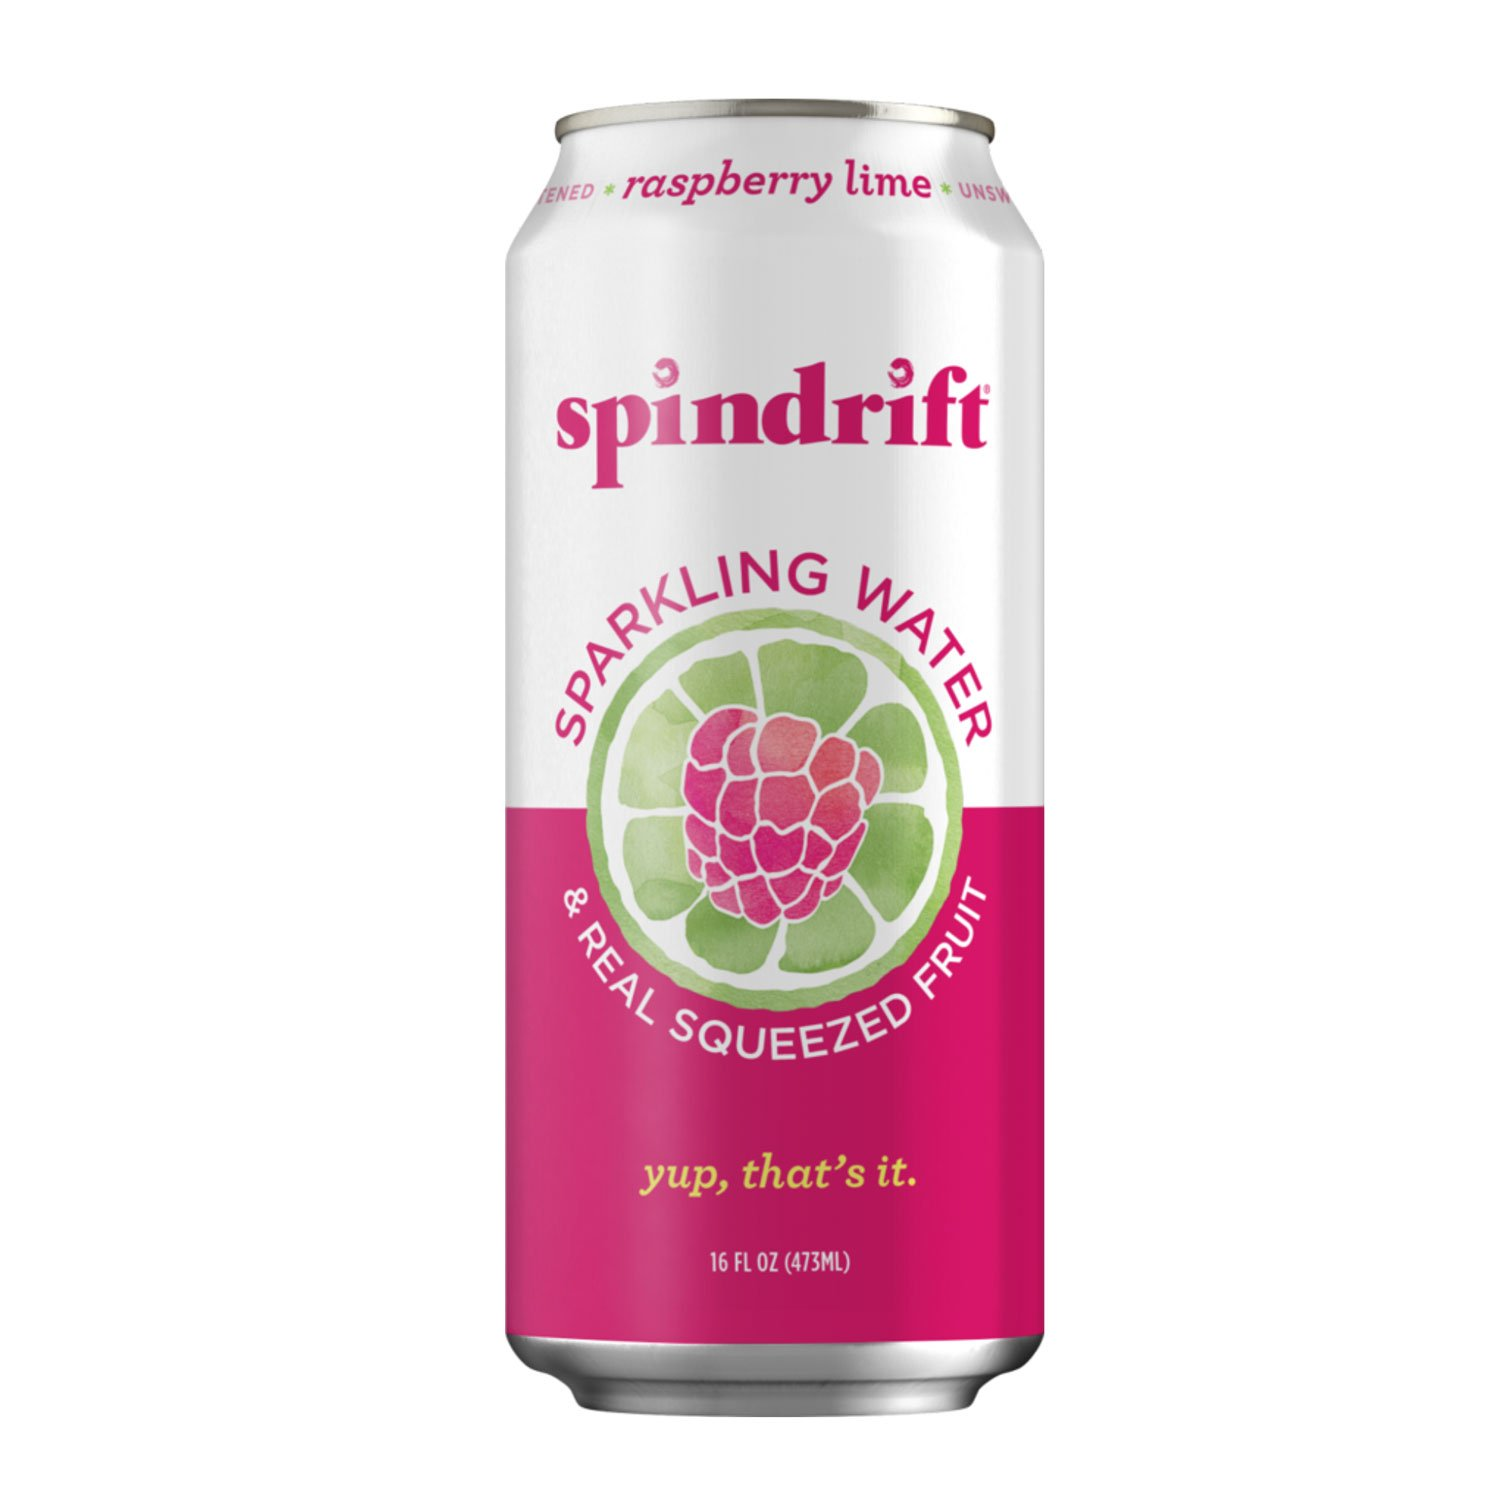 Spindrift Sparkling Water, Raspberry Lime Flavored, Made with Real Squeezed Fruit, 16 Fl Oz (Pack of 12) (Only 11 Calories per Seltzer Water Can)